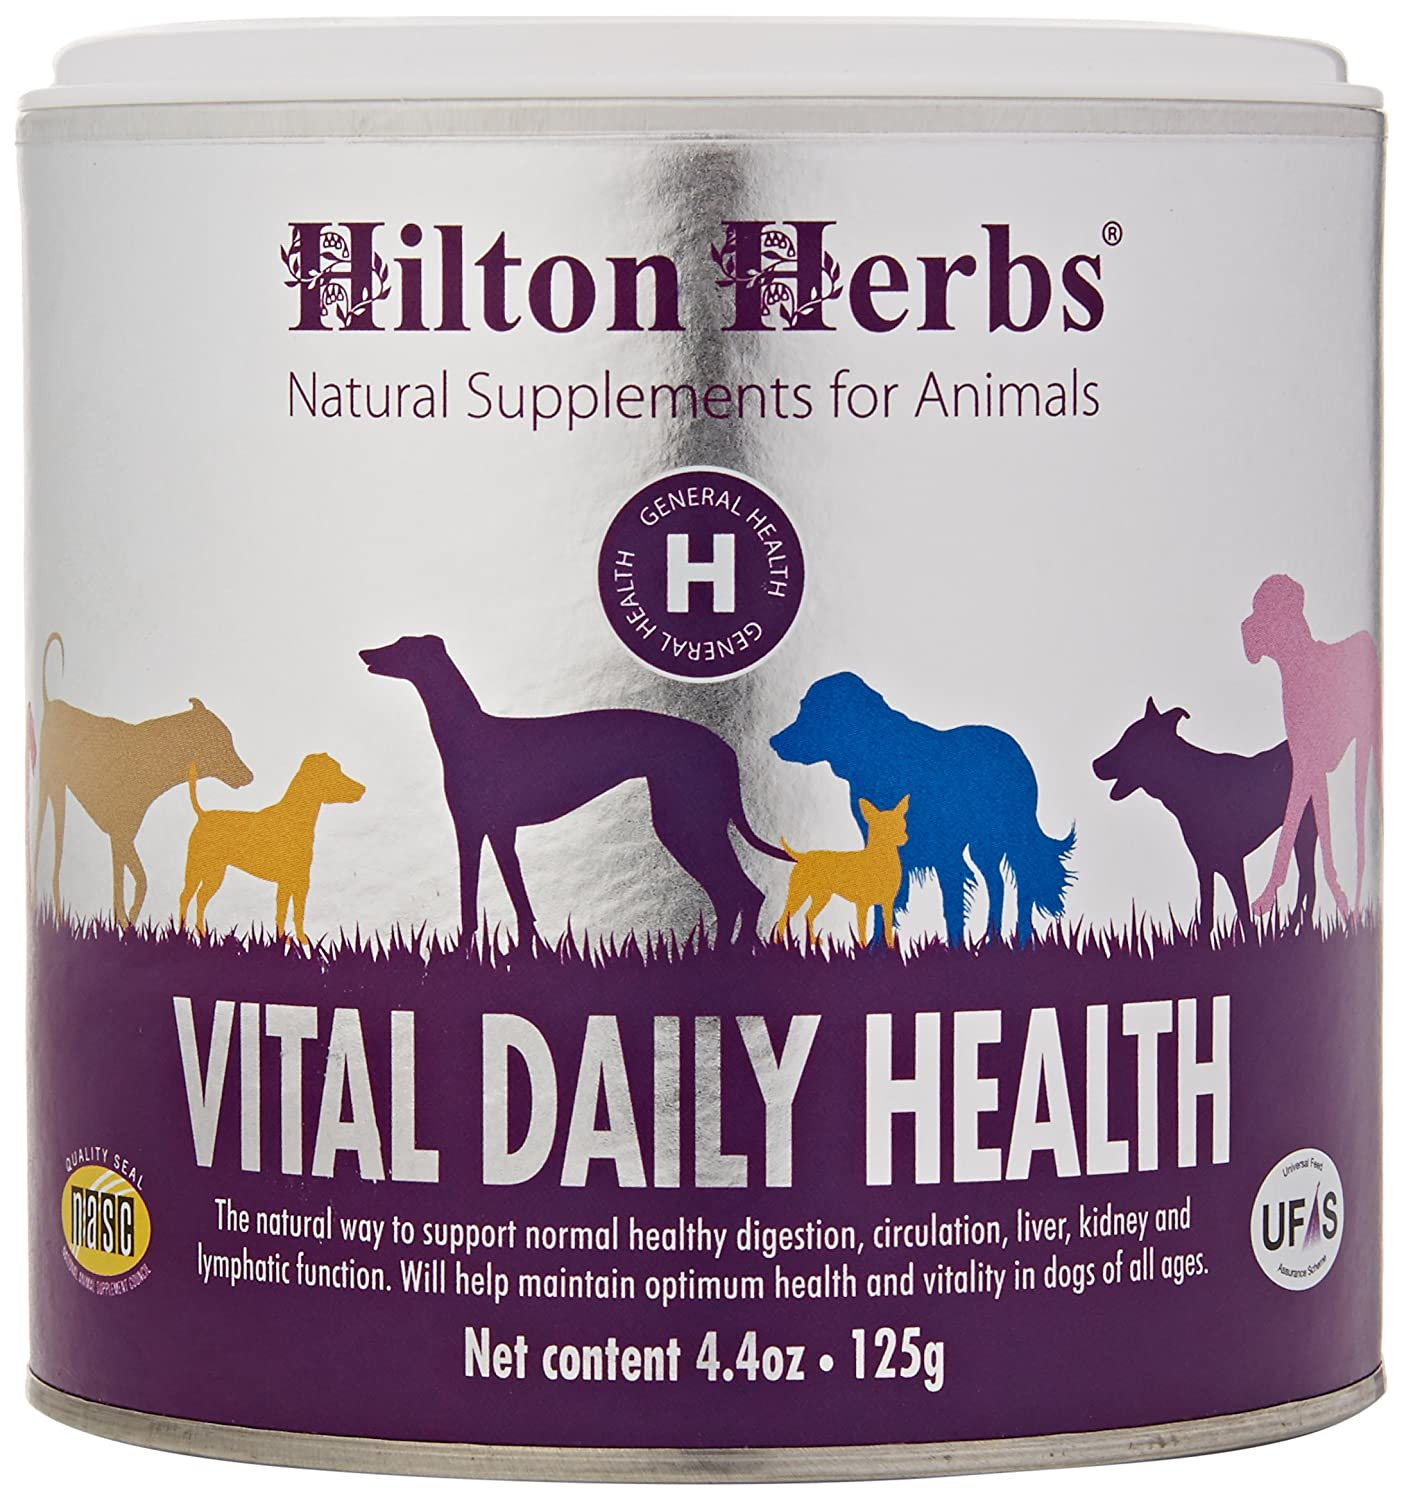 Hilton Herbs Canine Vital Daily Health Herbal Supplement for Dogs 4.4 oz Tub